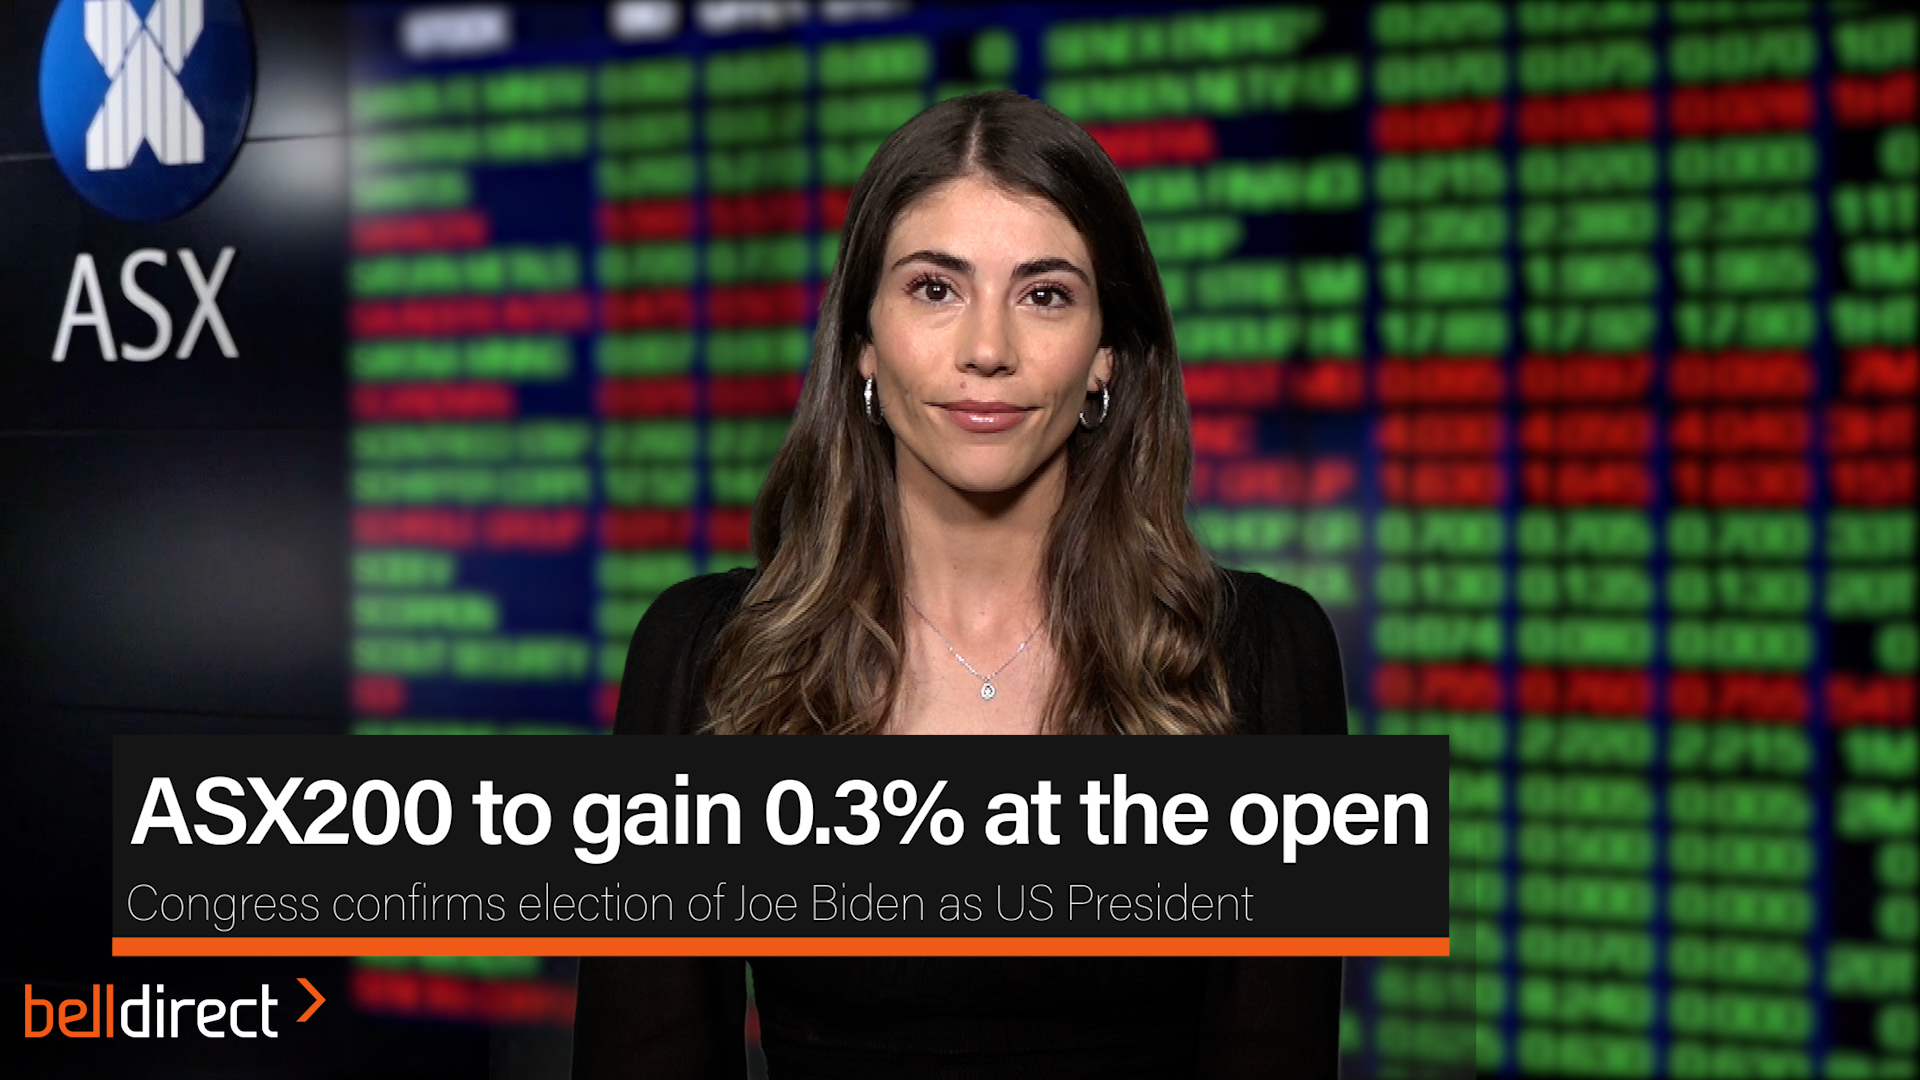 ASX200 to gain 0.3% at the open